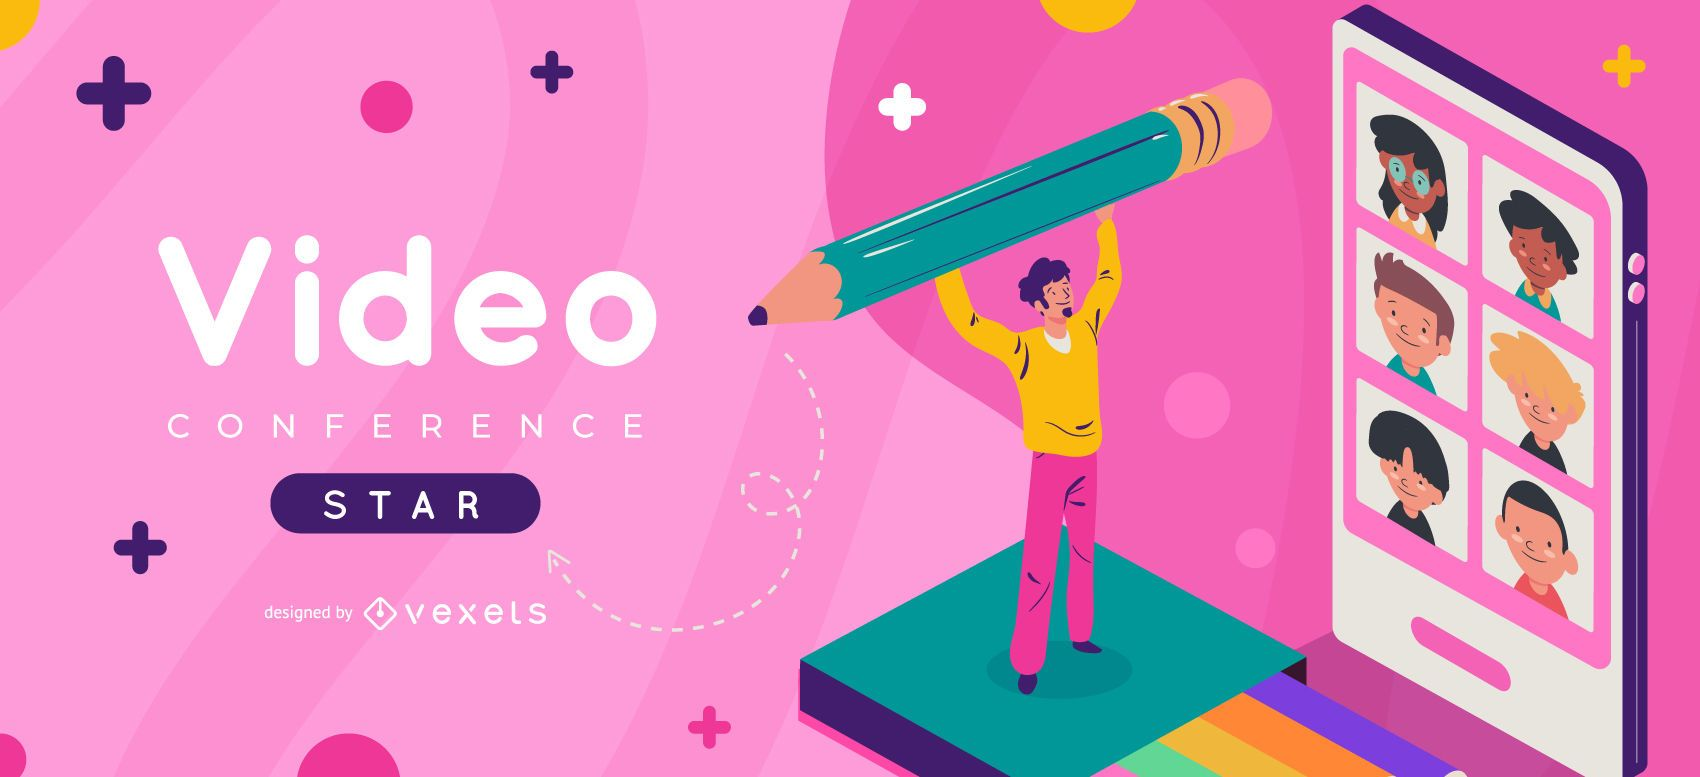 Video conference school slider template